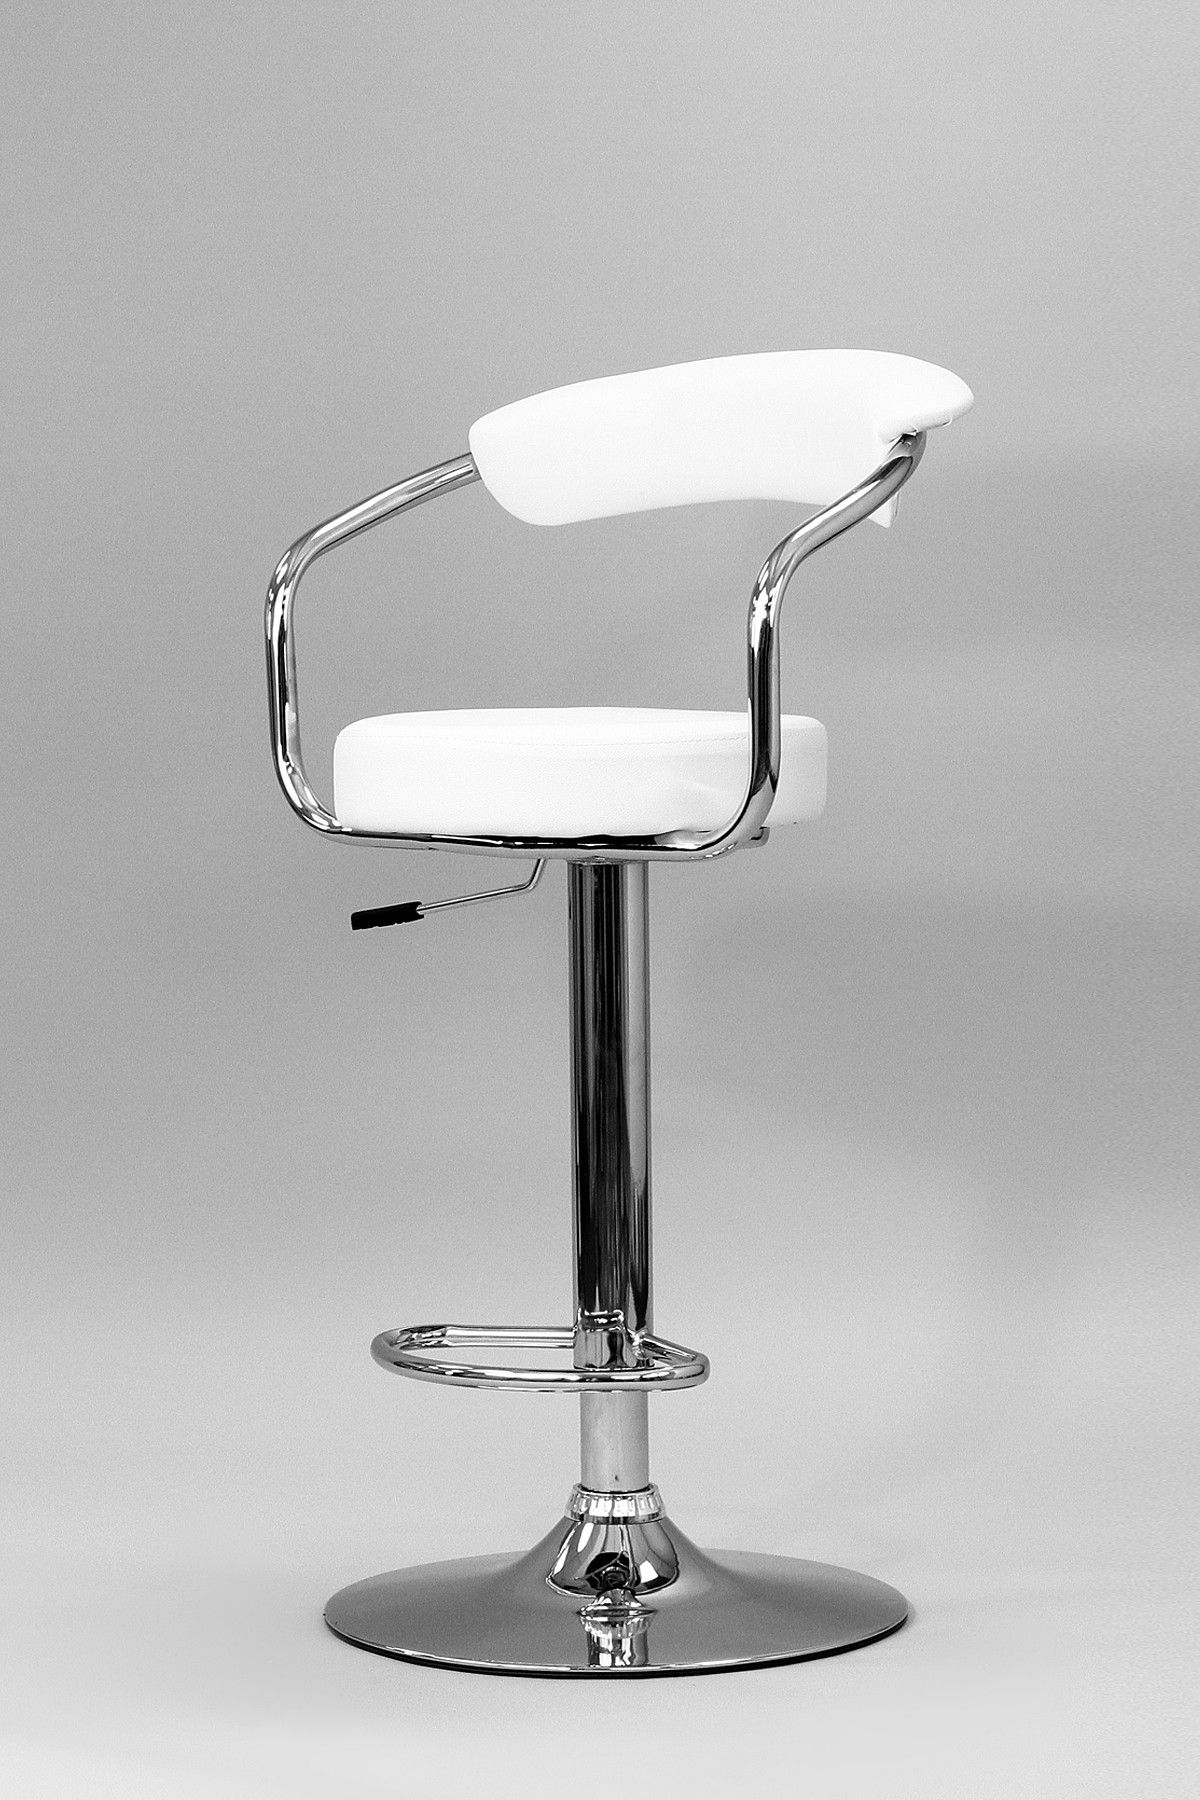 50s Diner Bar Stool By California Modern Classics 79